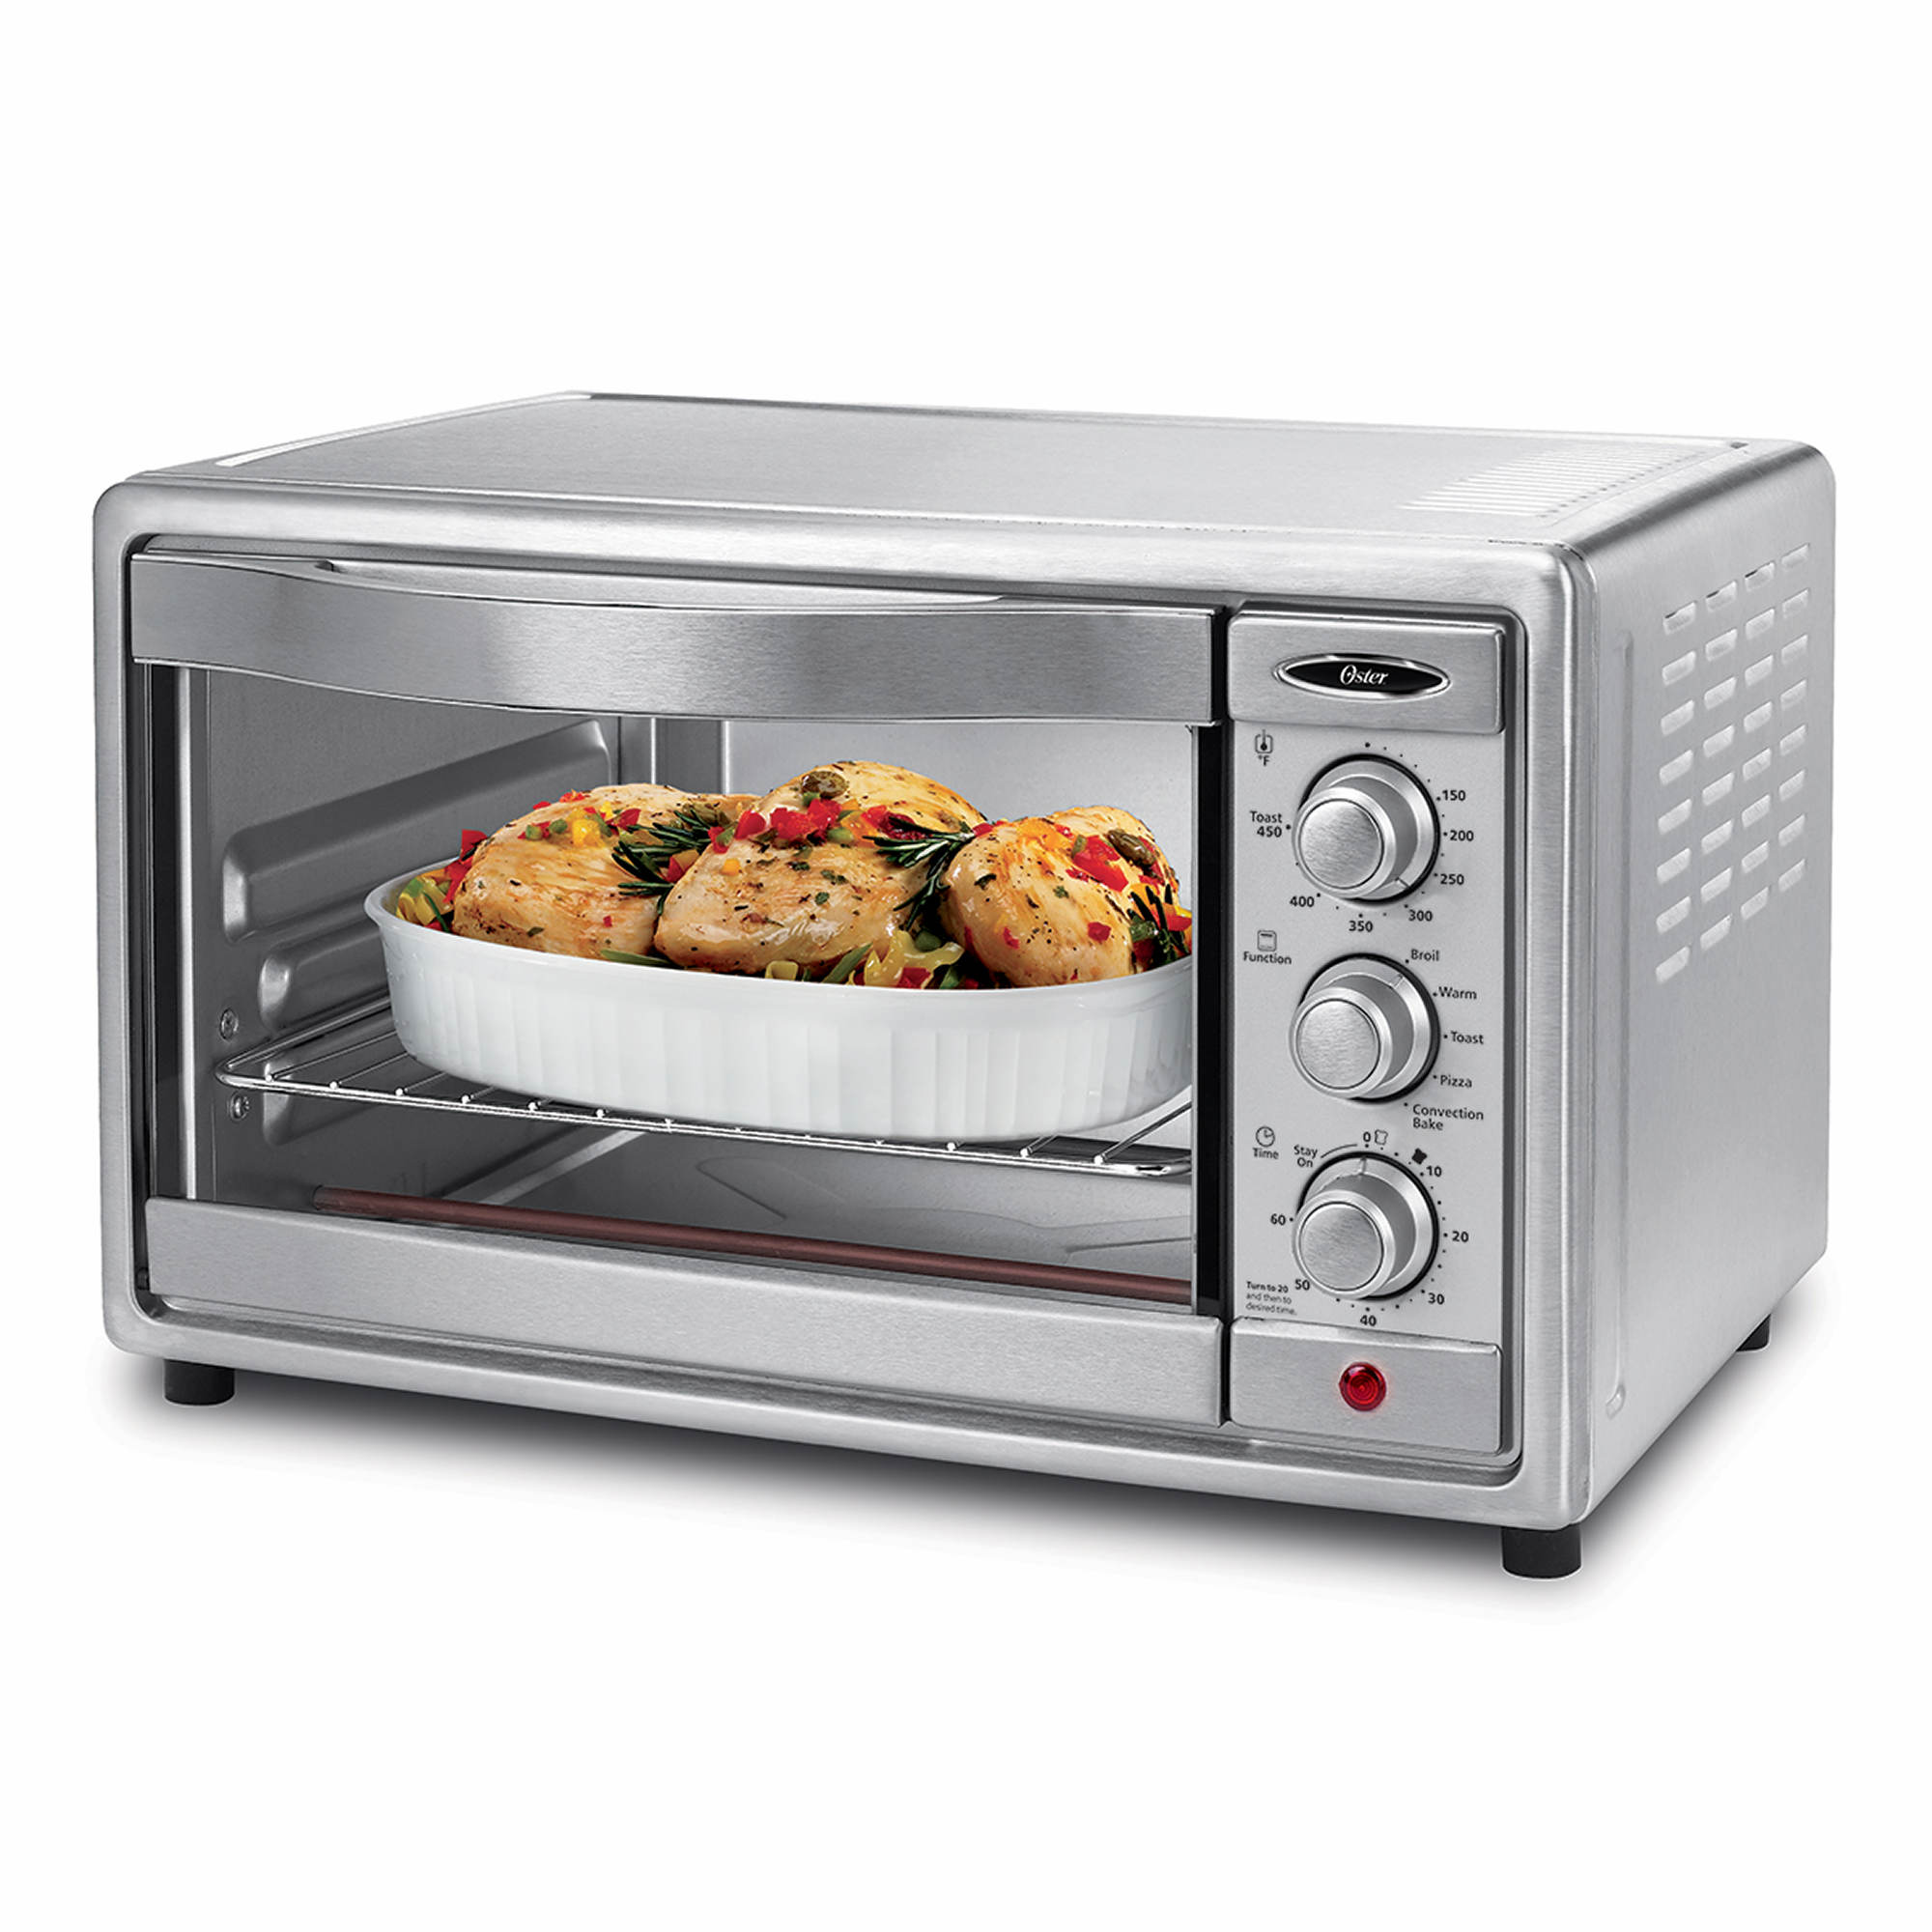 countertop matic countertops pdx large platinum convection wayfair slice toaster oven tabletop elite by maxi kitchen reviews